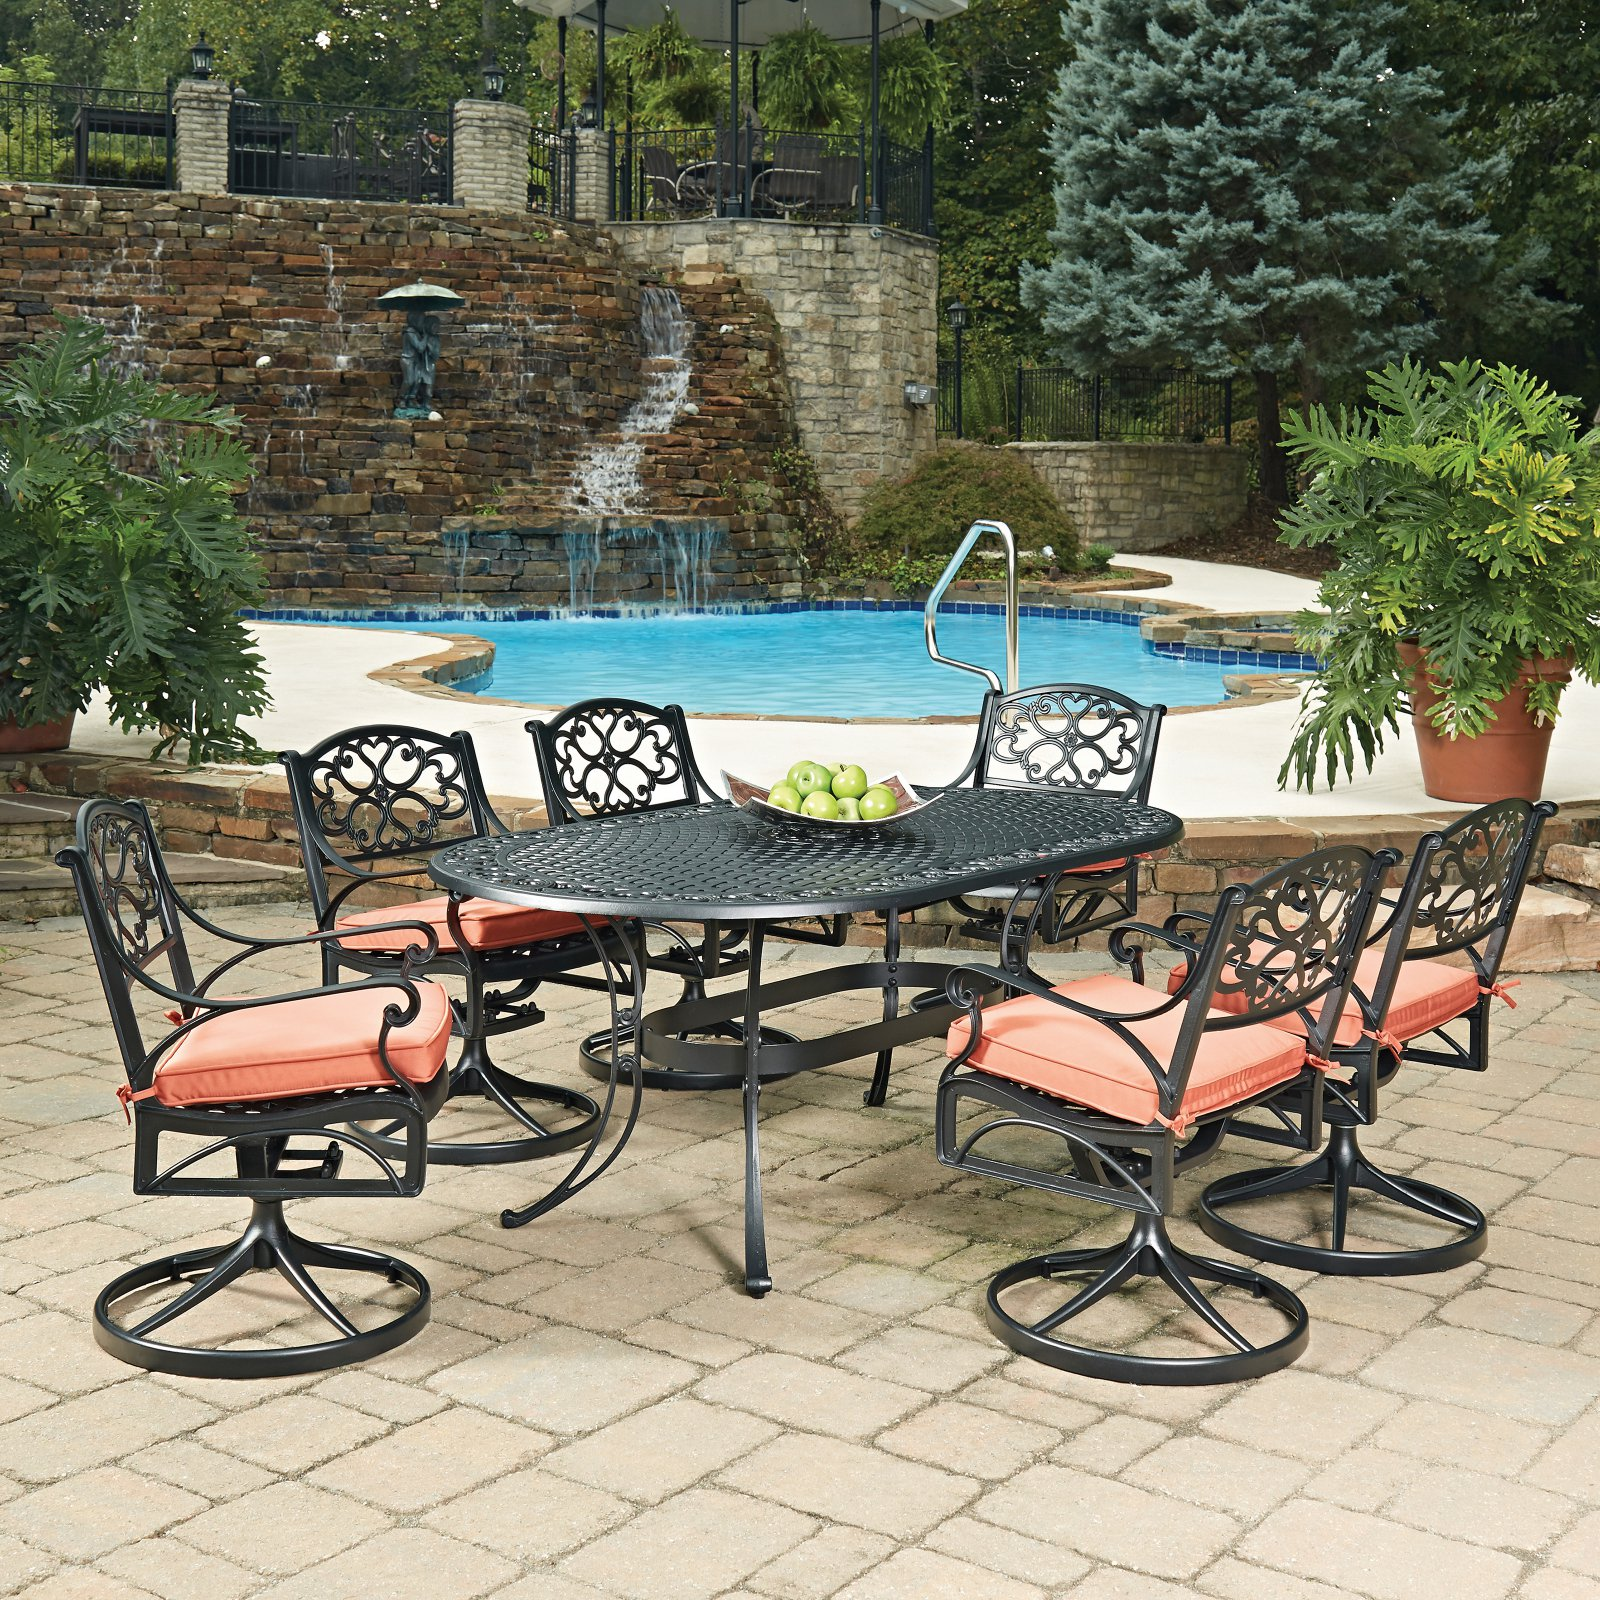 Home Styles Biscayne Swivel Patio Dining Room Set Seats 6 by Home Styles